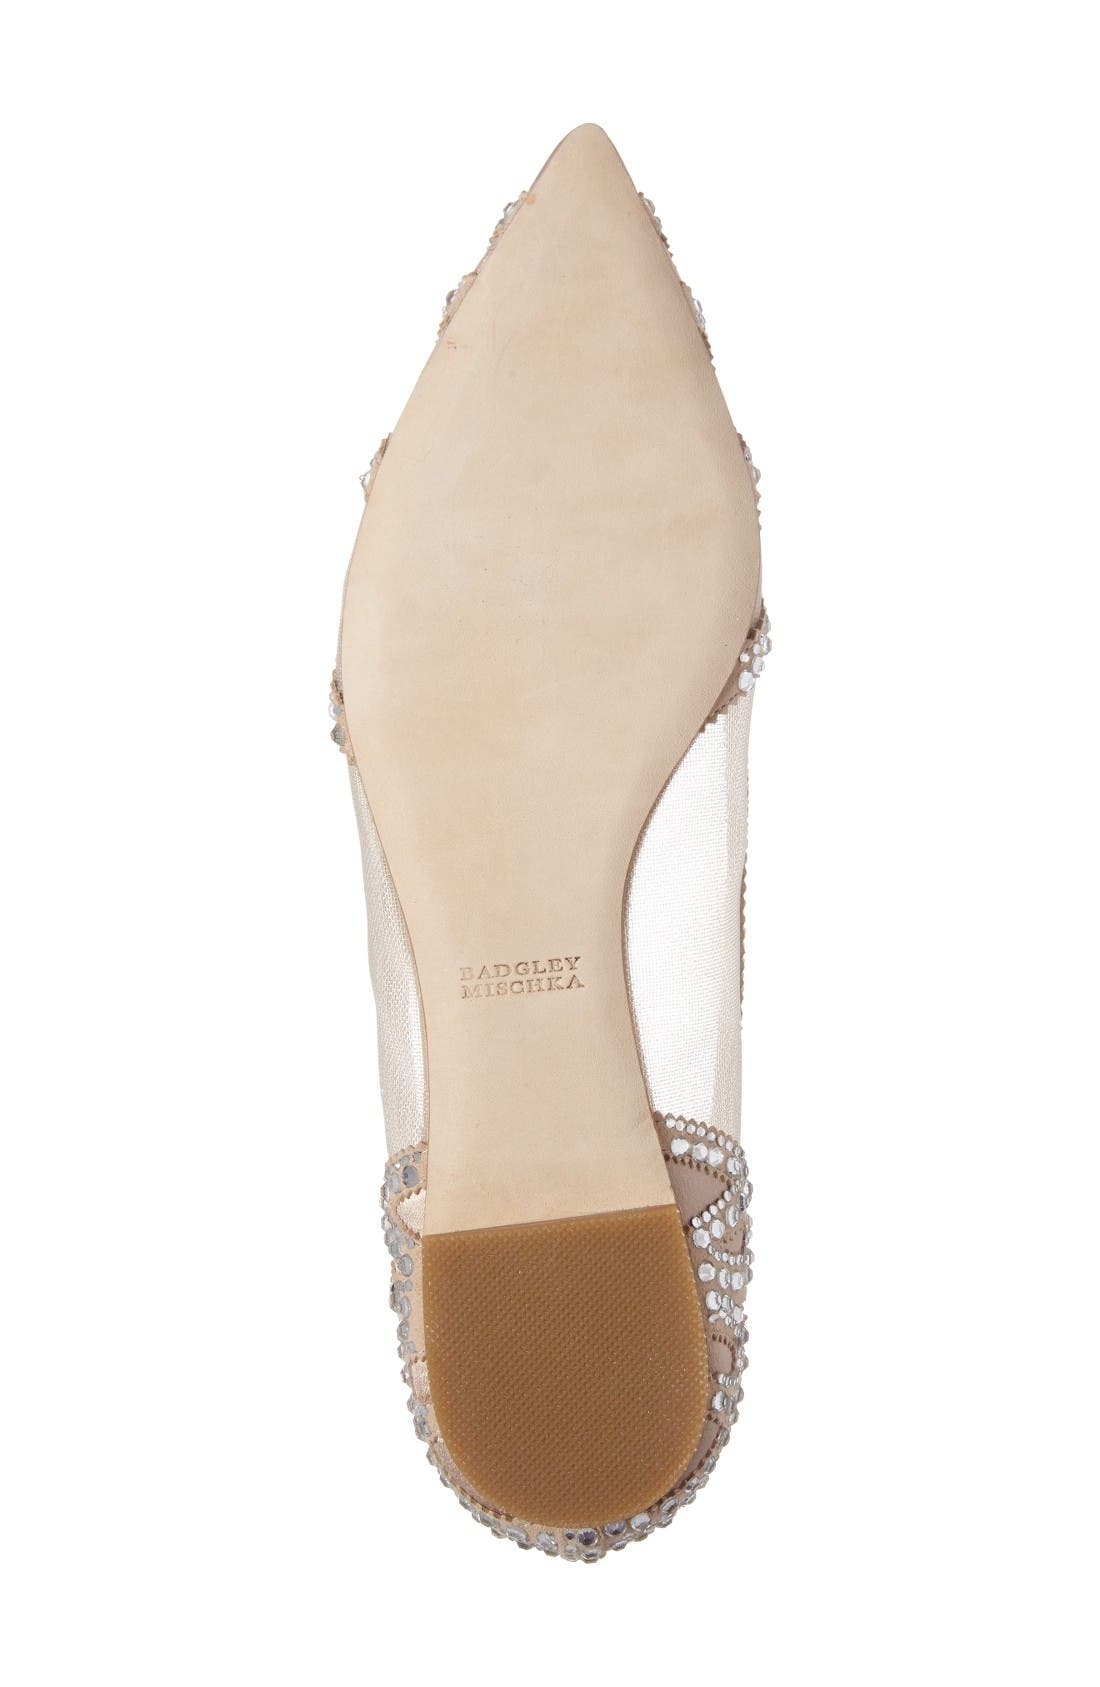 Gigi Crystal Pointy Toe Flat,                             Alternate thumbnail 4, color,                             Latte Suede